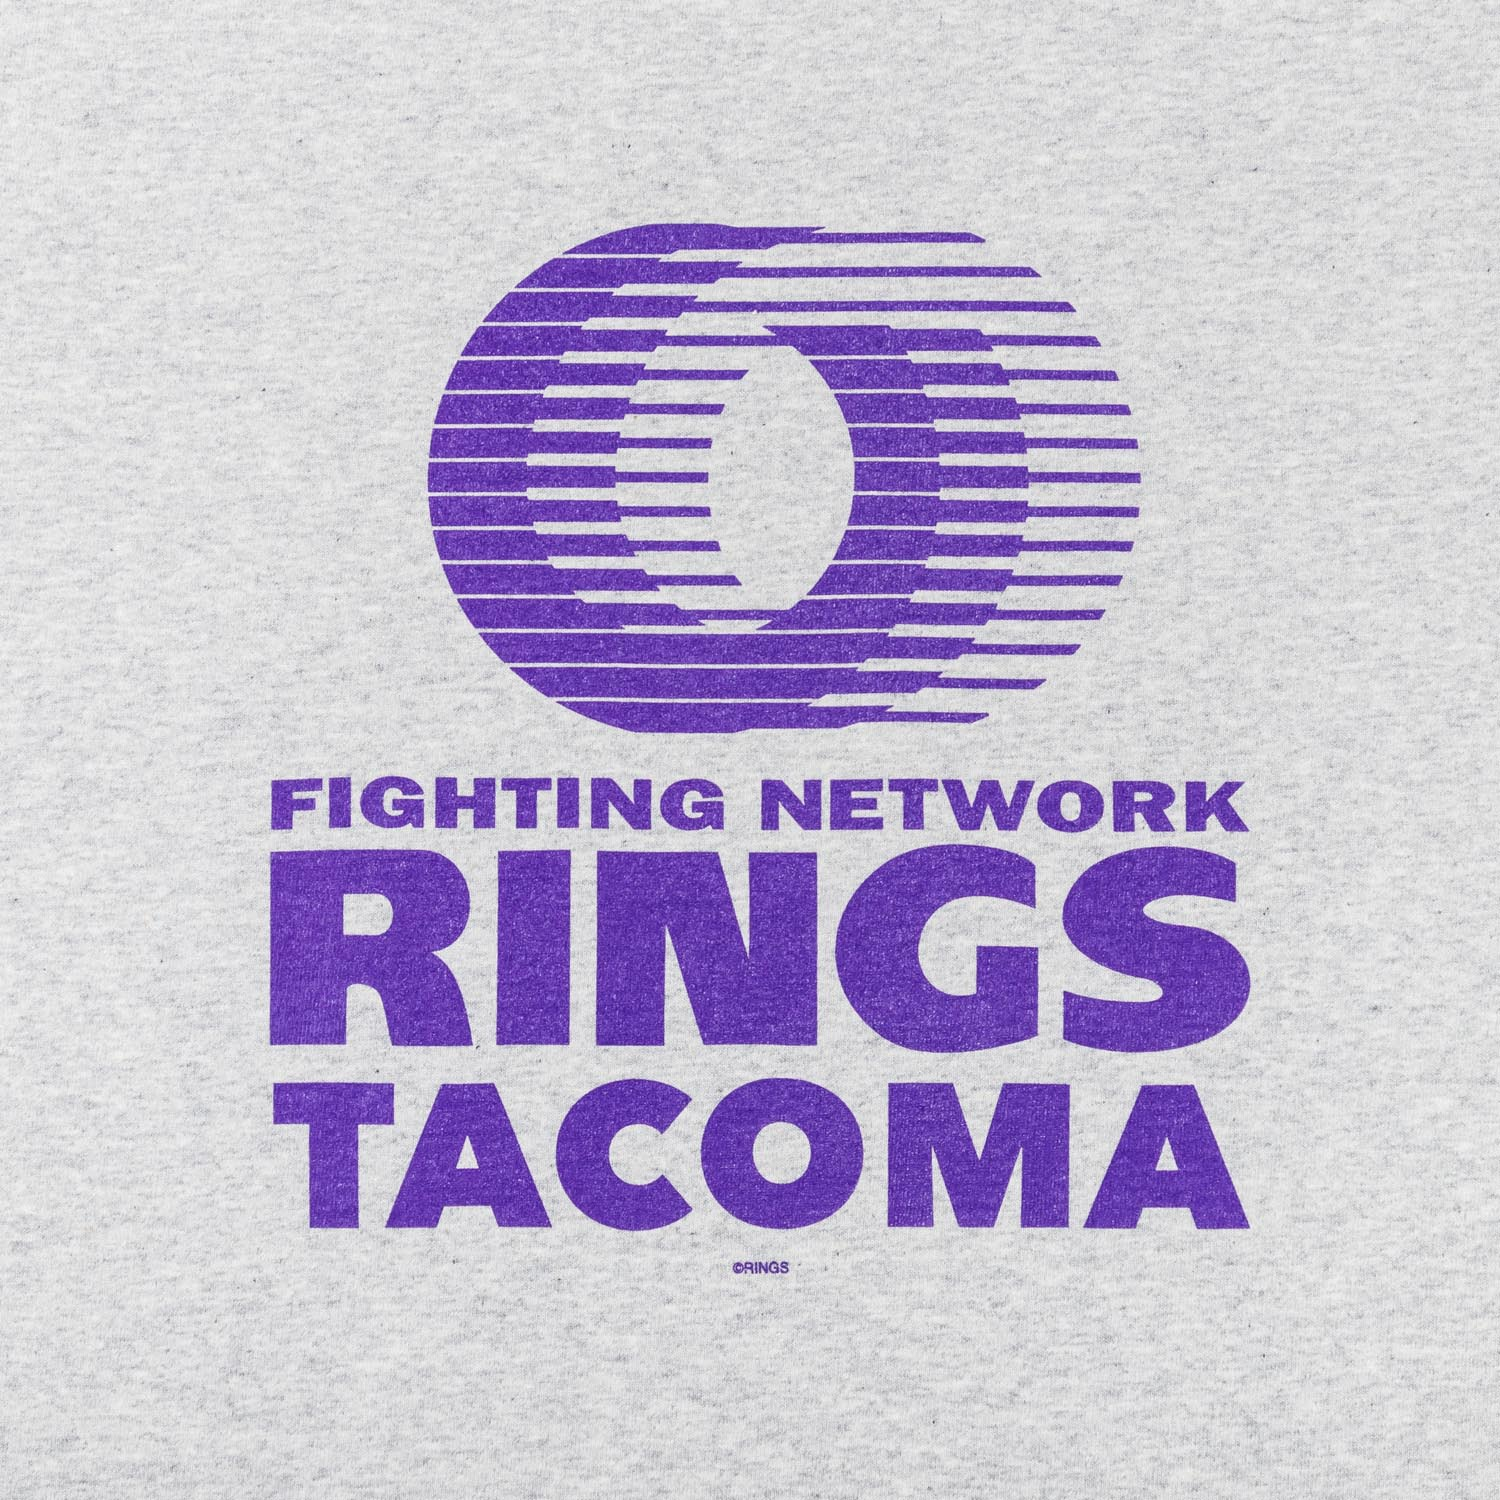 RINGS TACOMA Tee re-designed by Jerry UKAI (Reissue 2021)